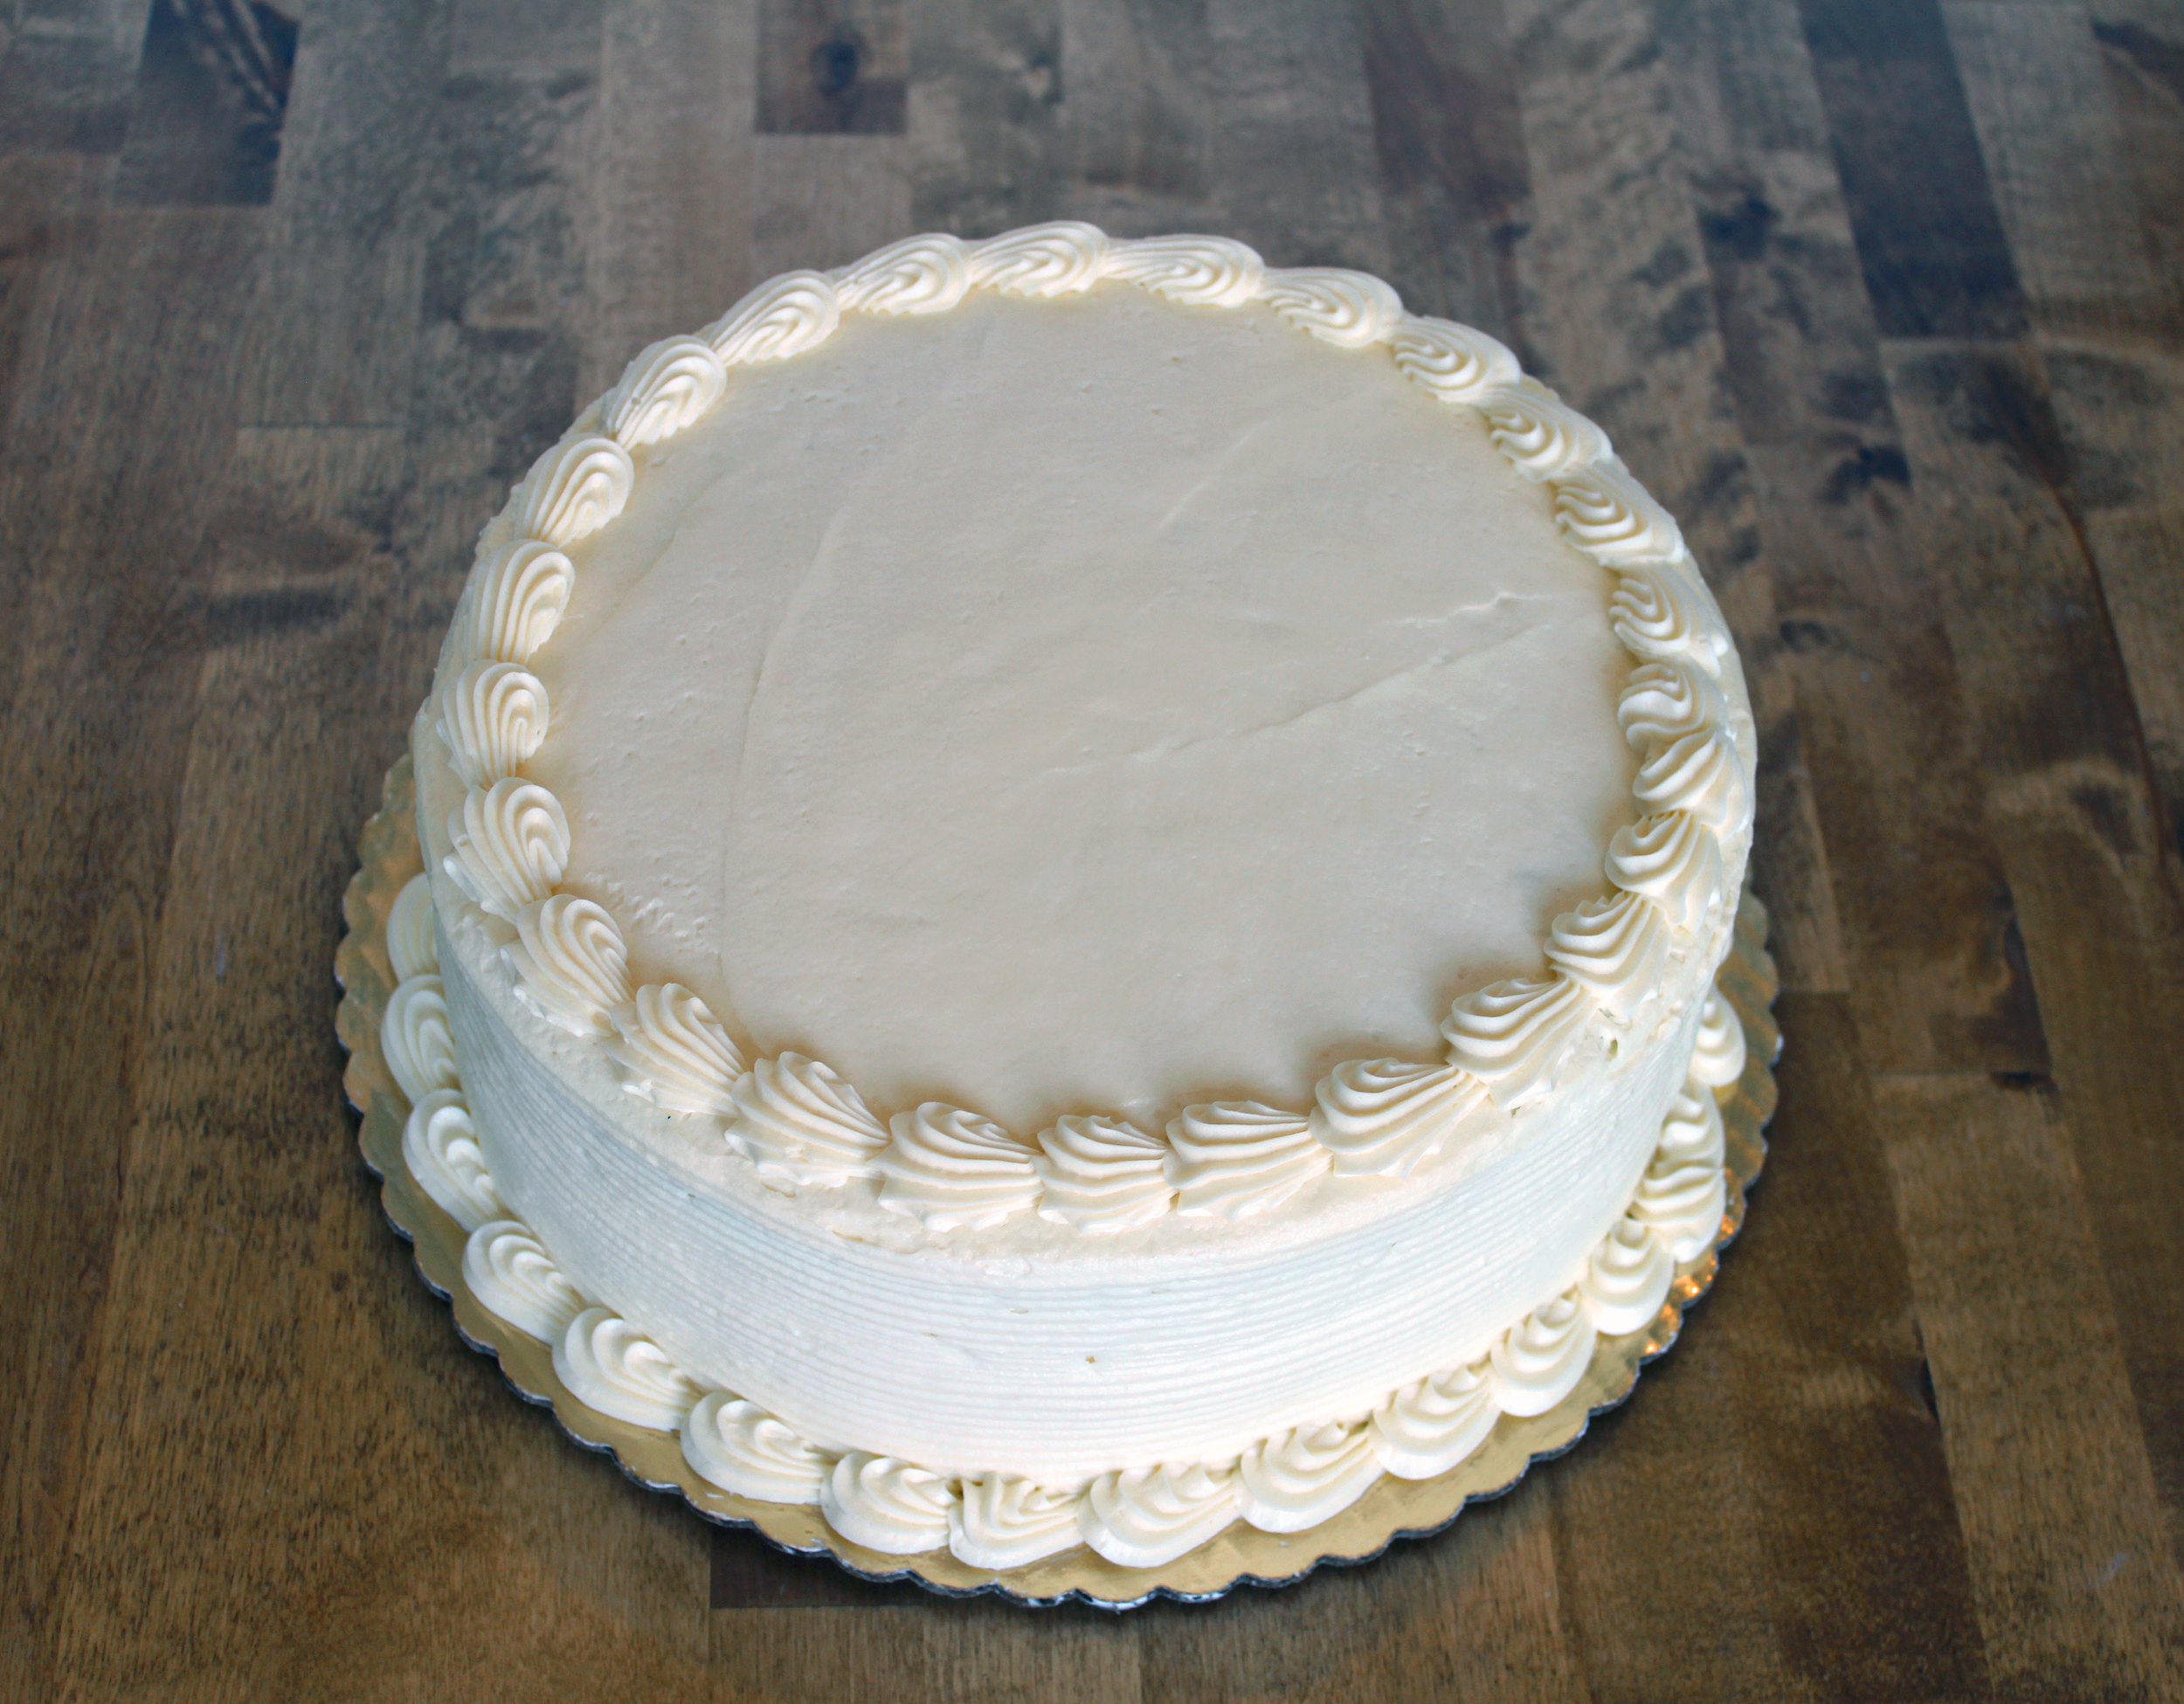 10 in round cake - $26.99    serves 16-20 people